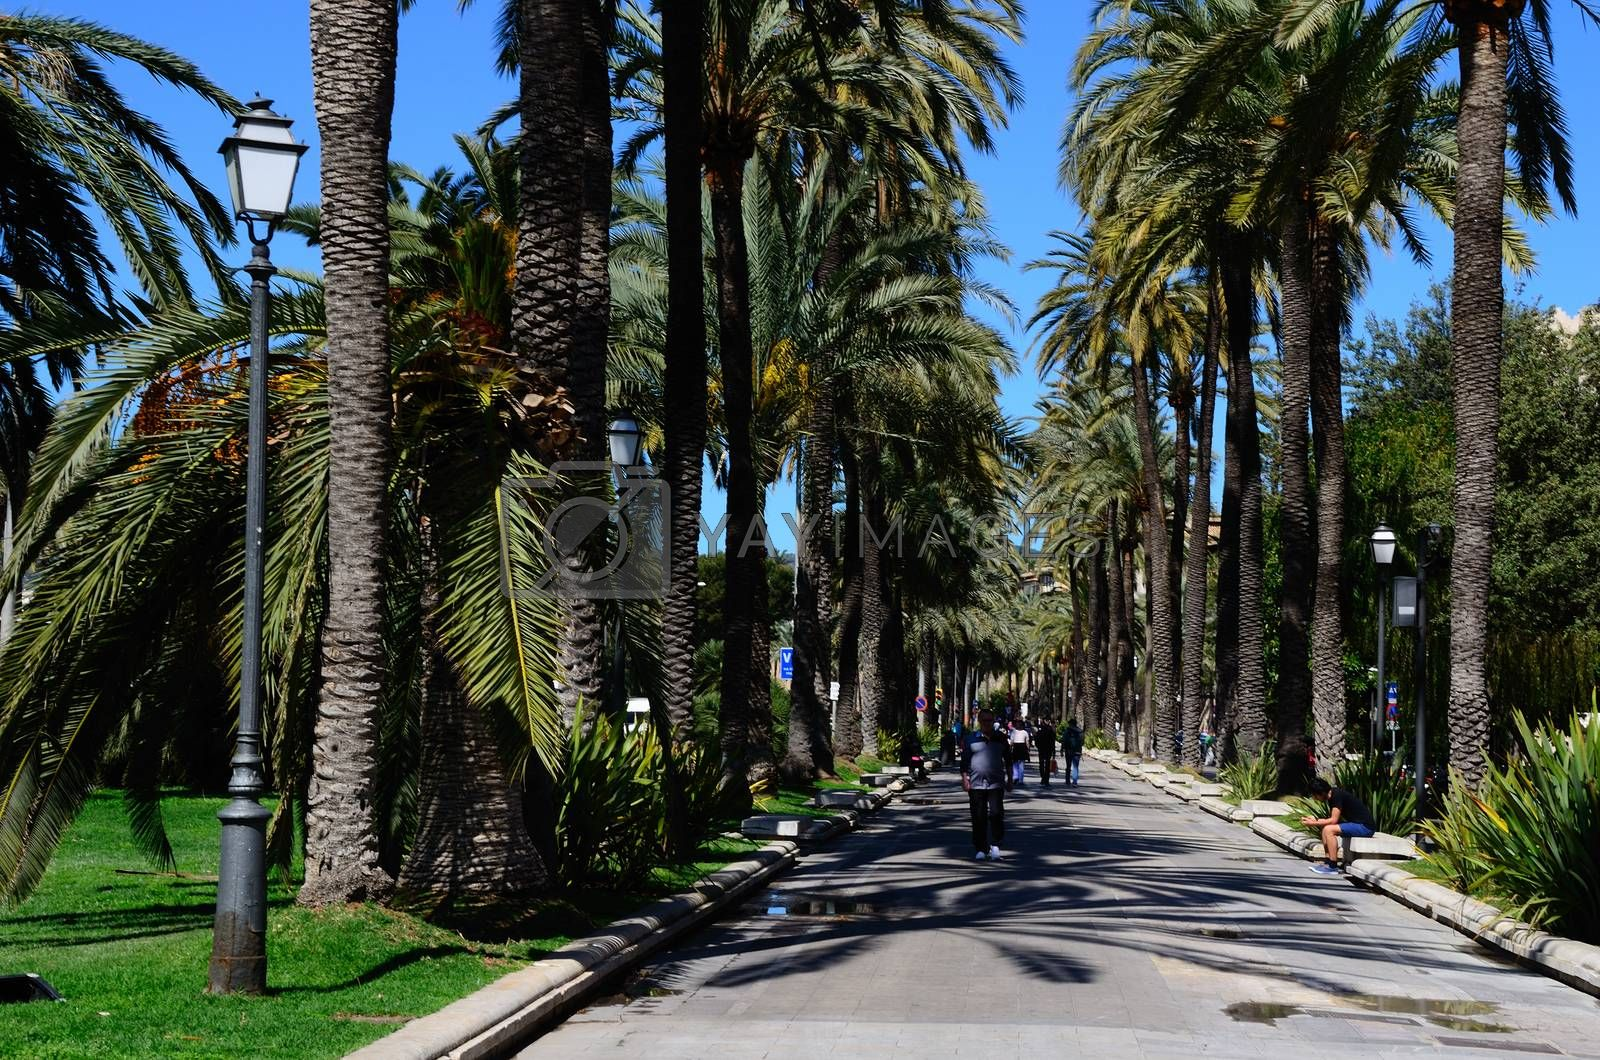 many palm trees in an alley in Mallorca